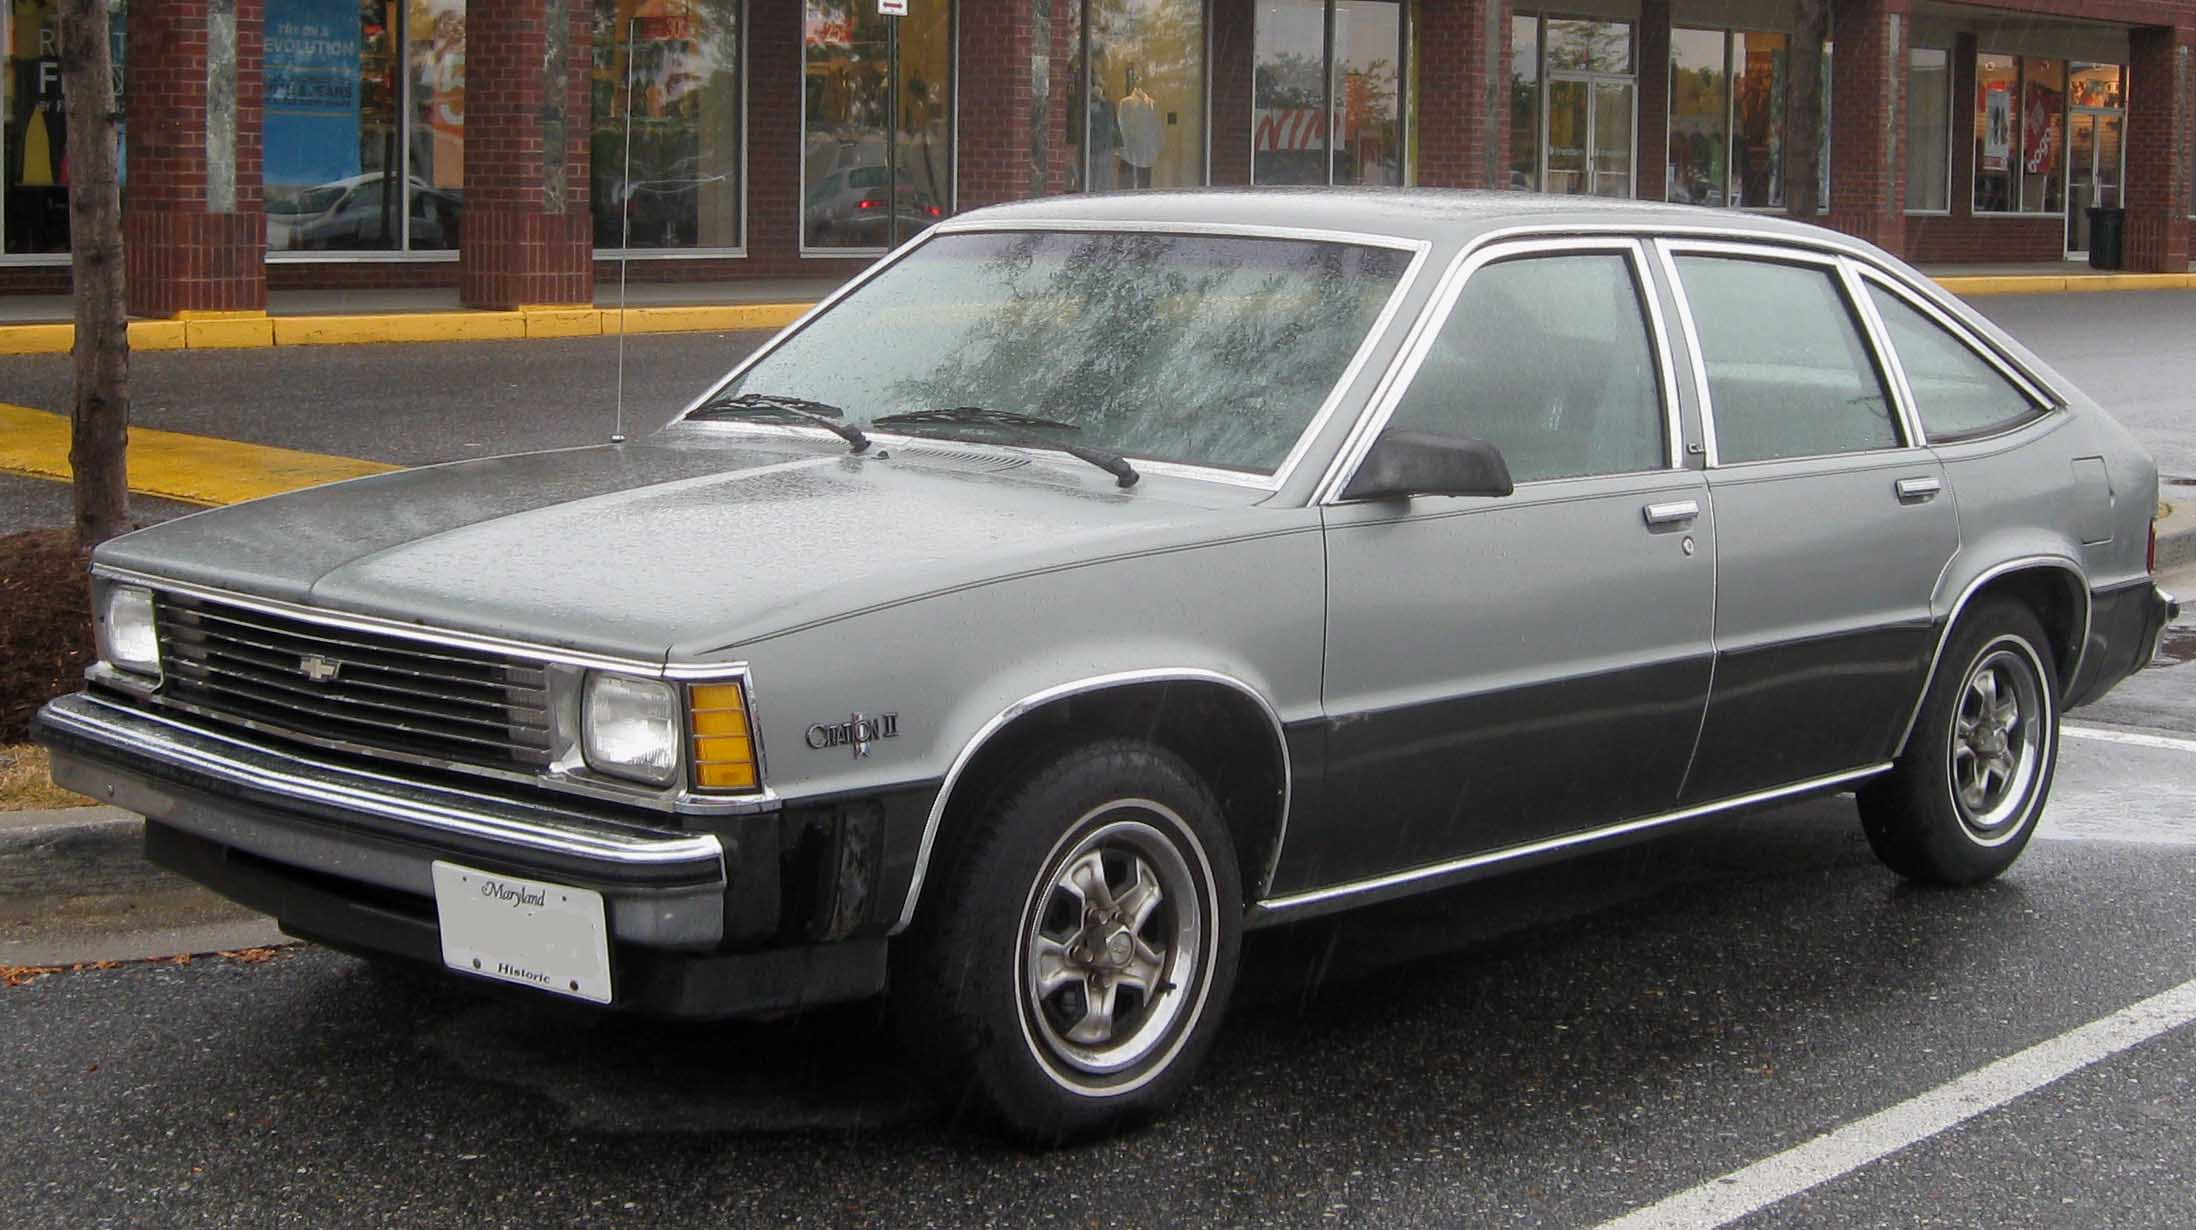 1980 Chevrolet Citation #1